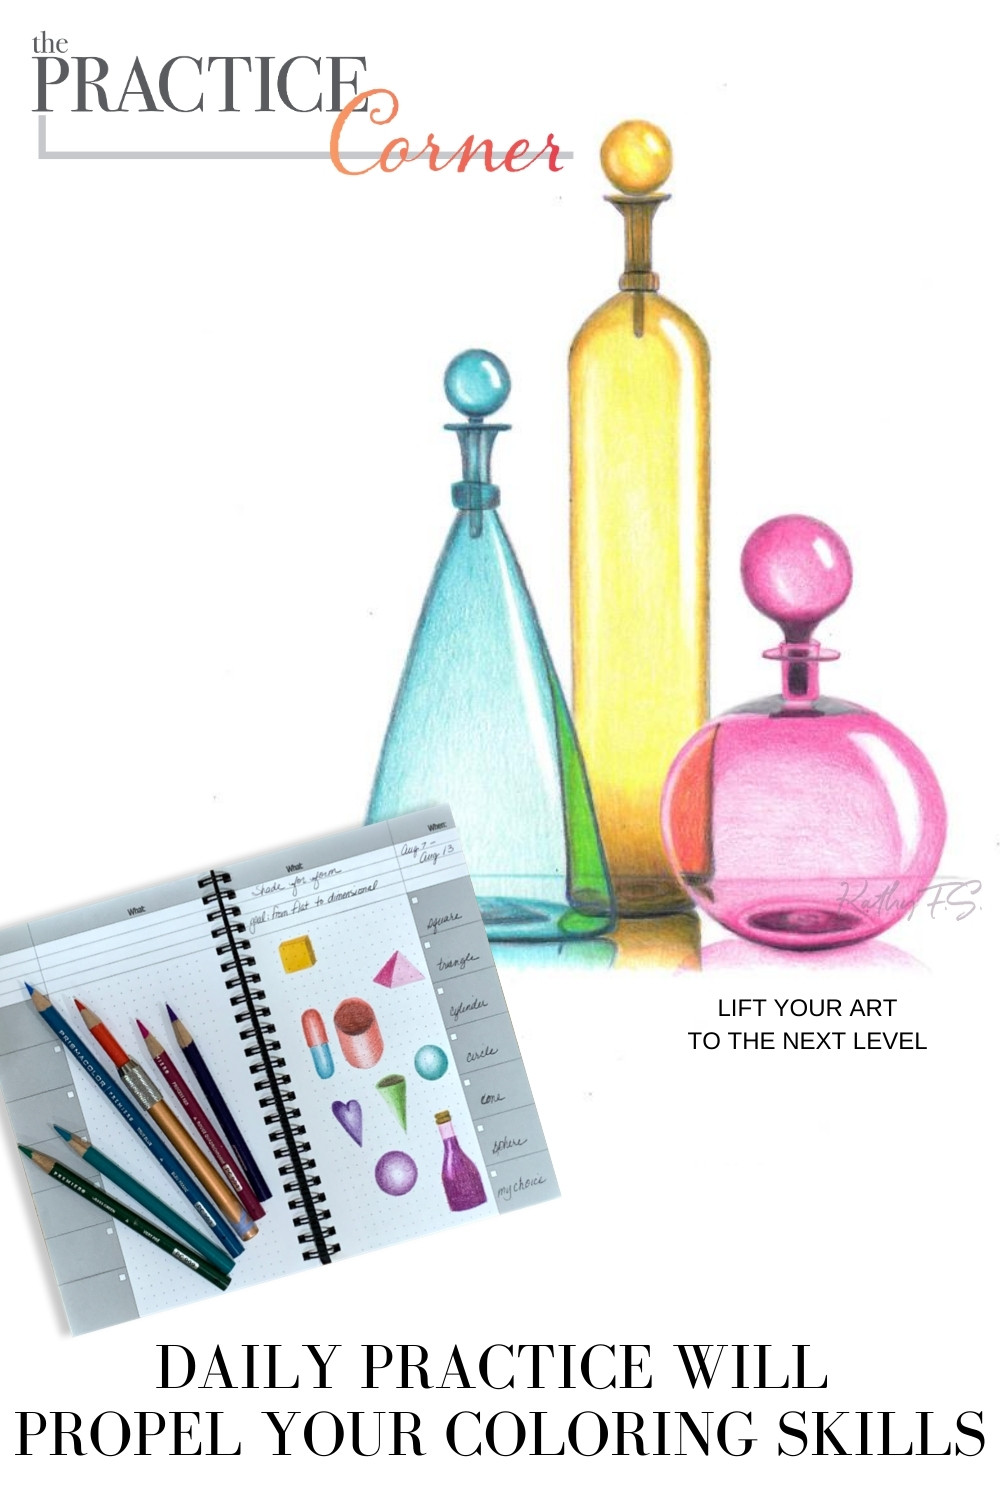 Daily practice will propel your coloring skills. | The Practice Corner | #copicmarkerpractice #coloredpencilpractice